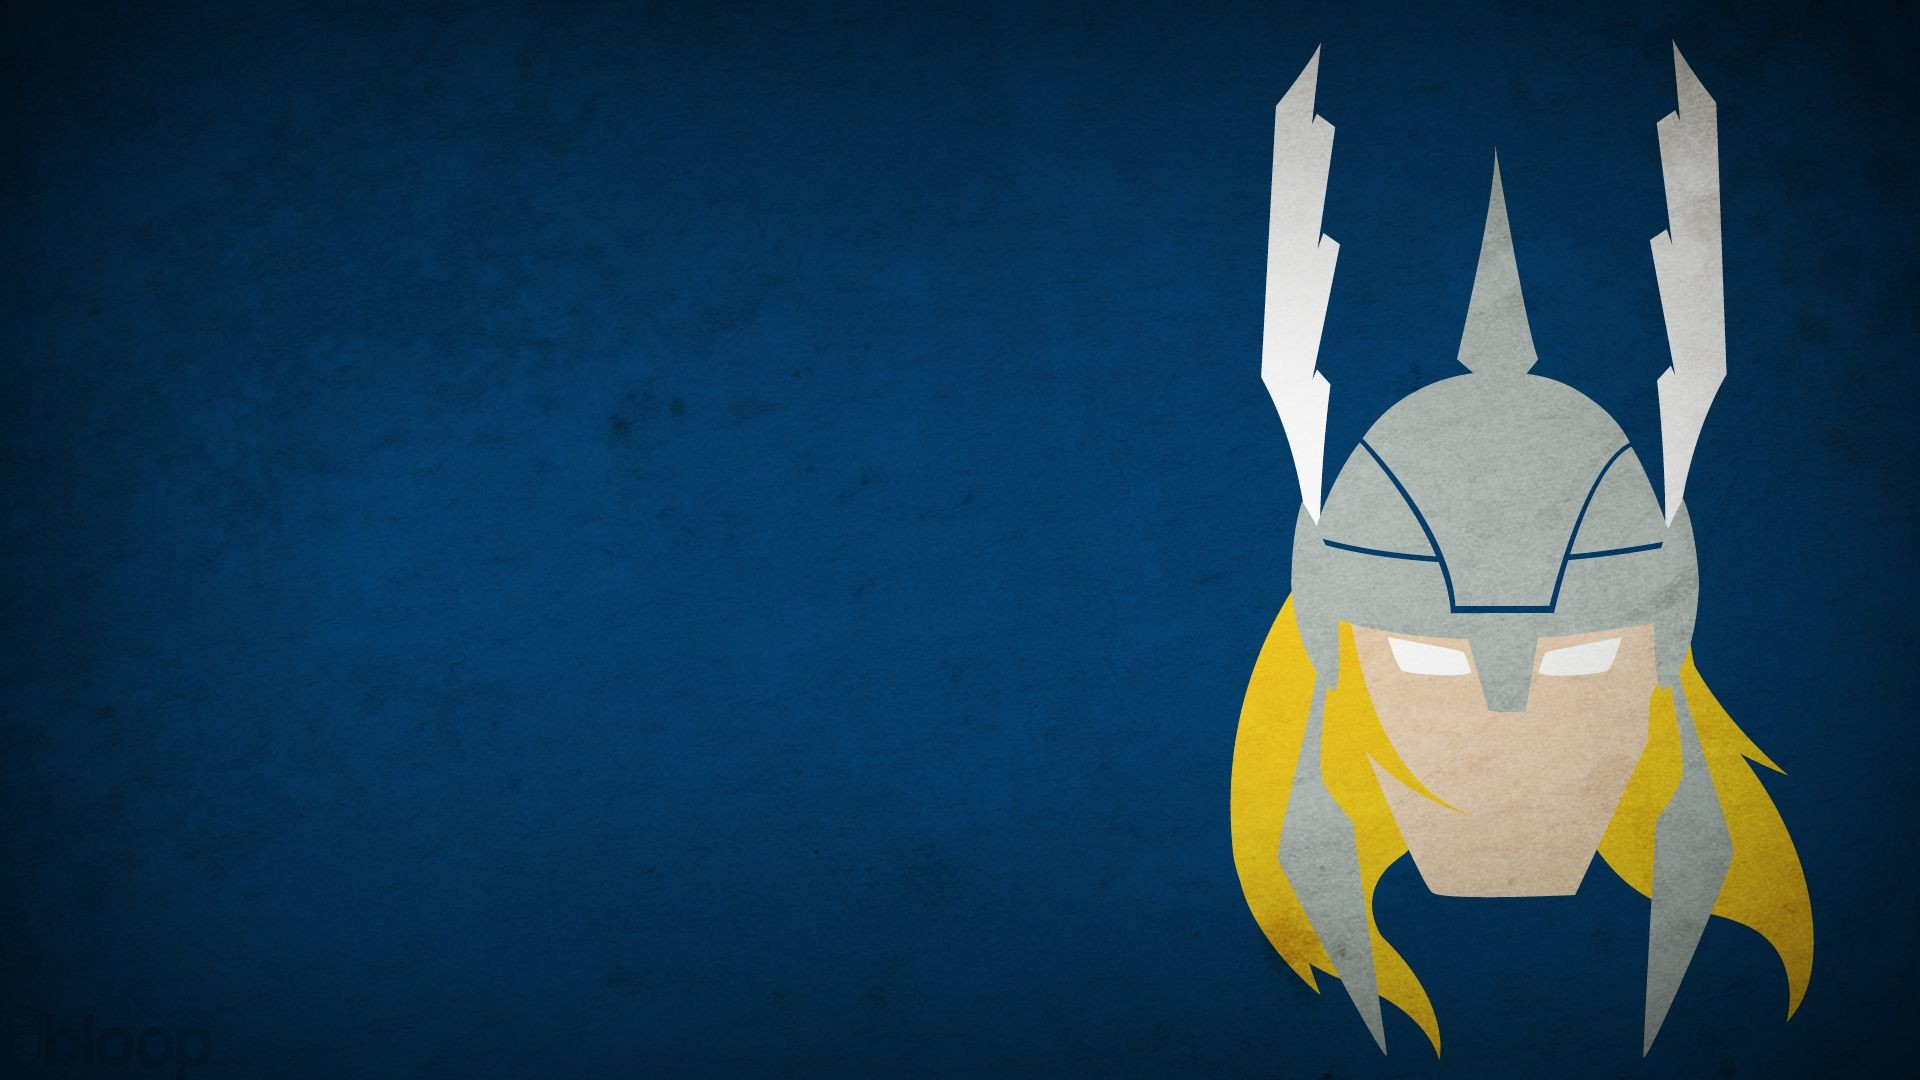 Res: 1920x1080, Thor